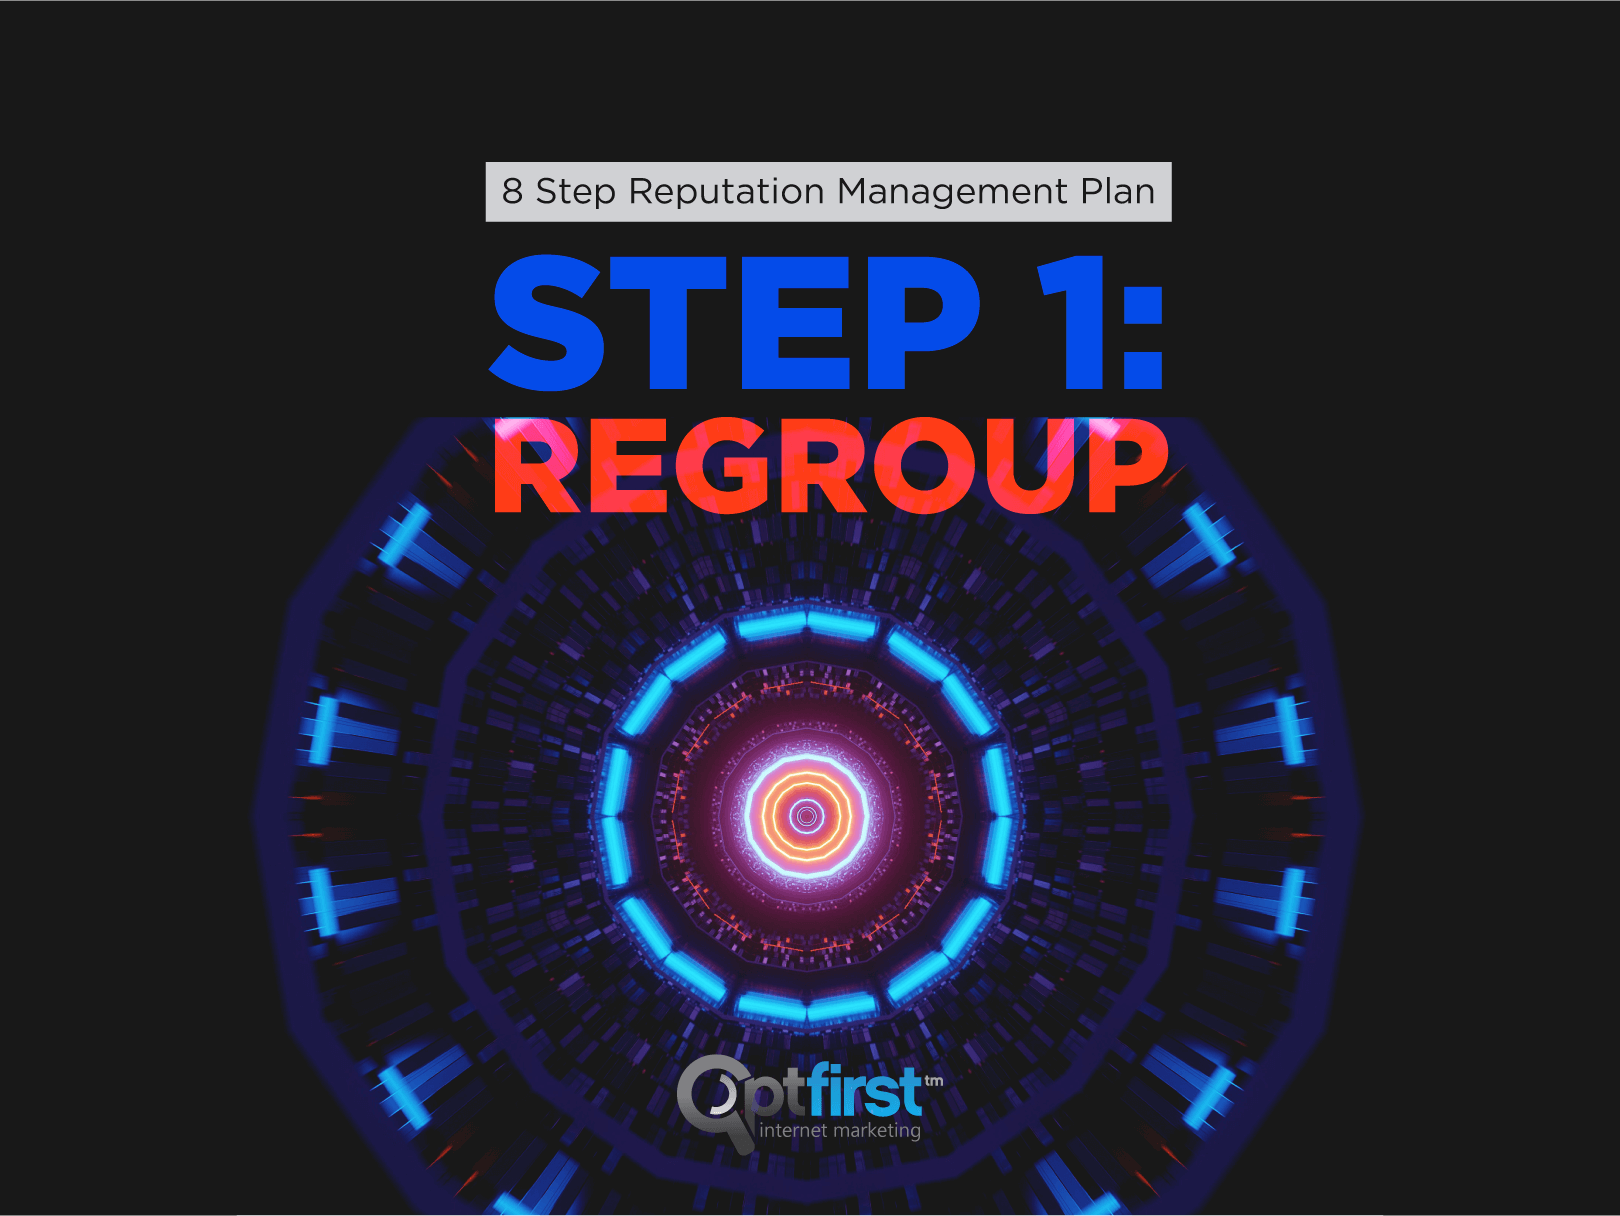 8 Step Reputation Management Plan Step 1:Regroup